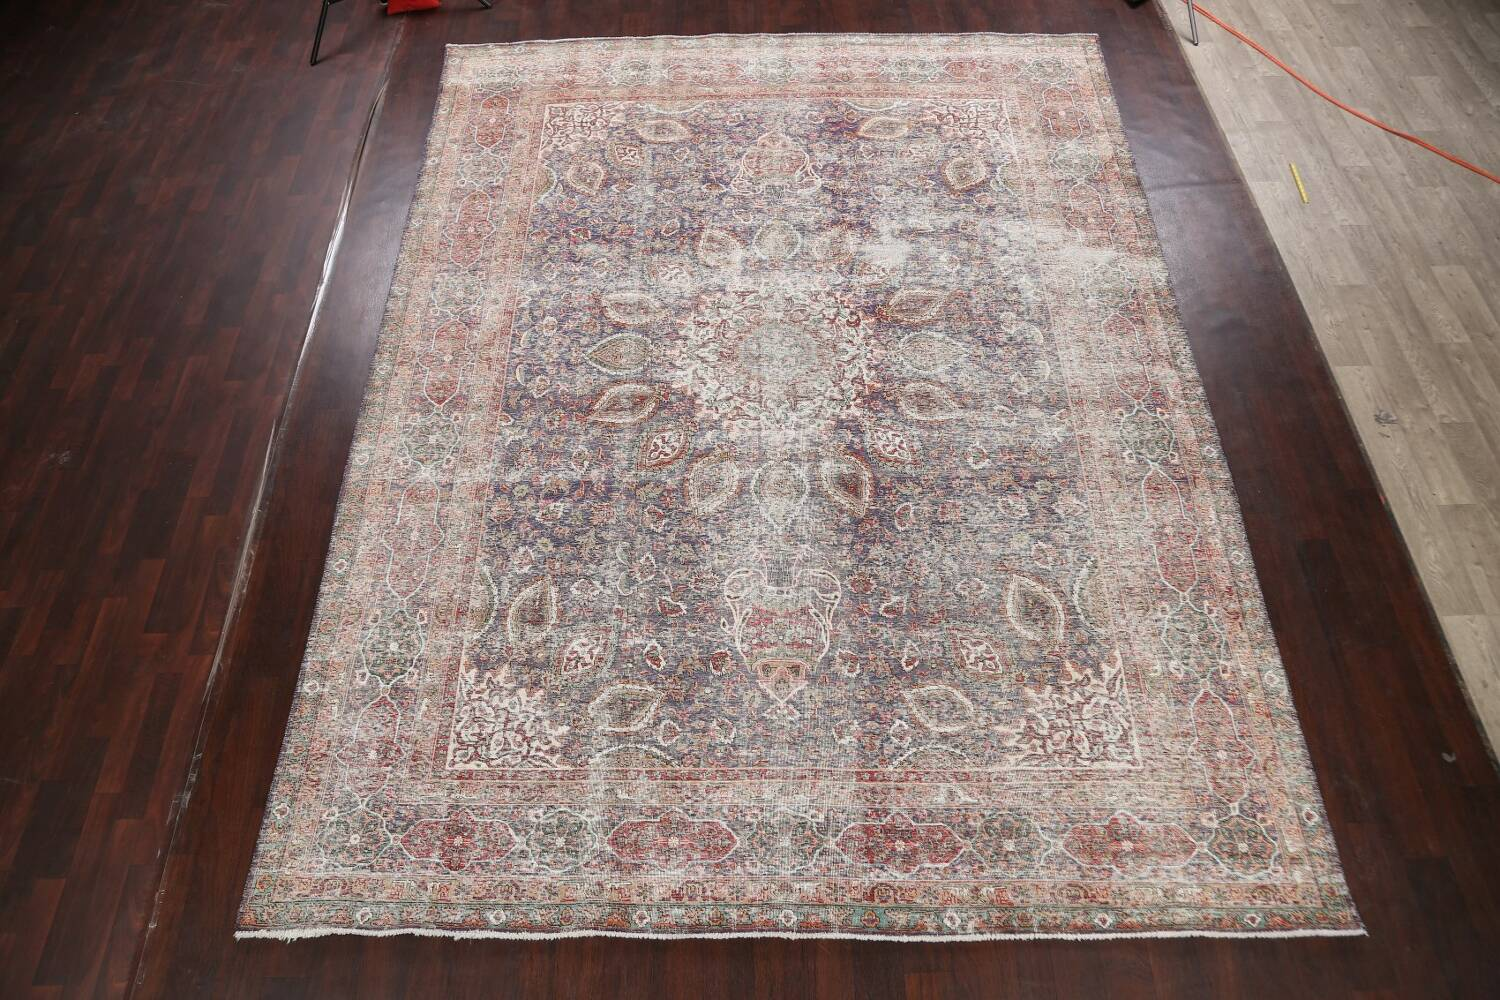 Antique Distressed Floral Tabriz Persian Area Rug 10x13 image 2